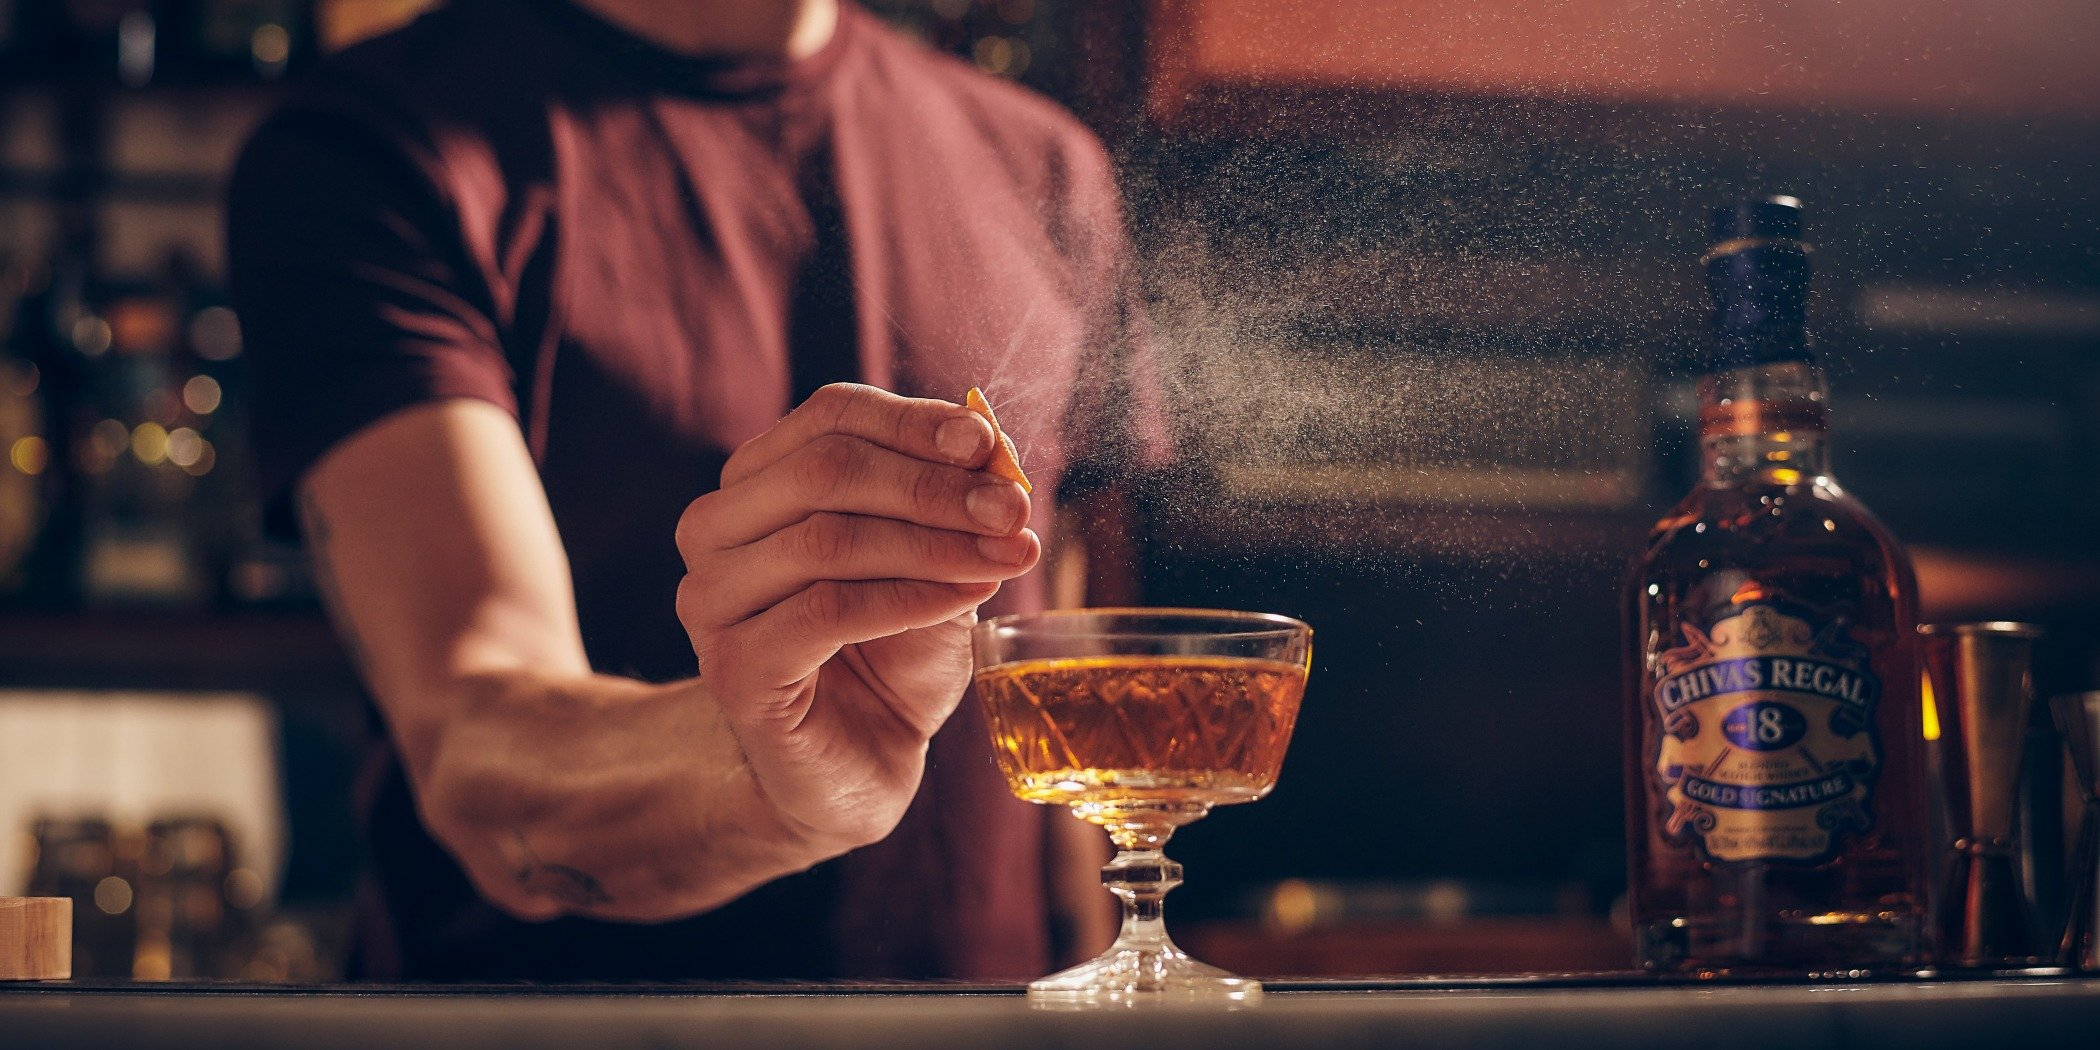 5 top tips to improve your cocktail-making skills